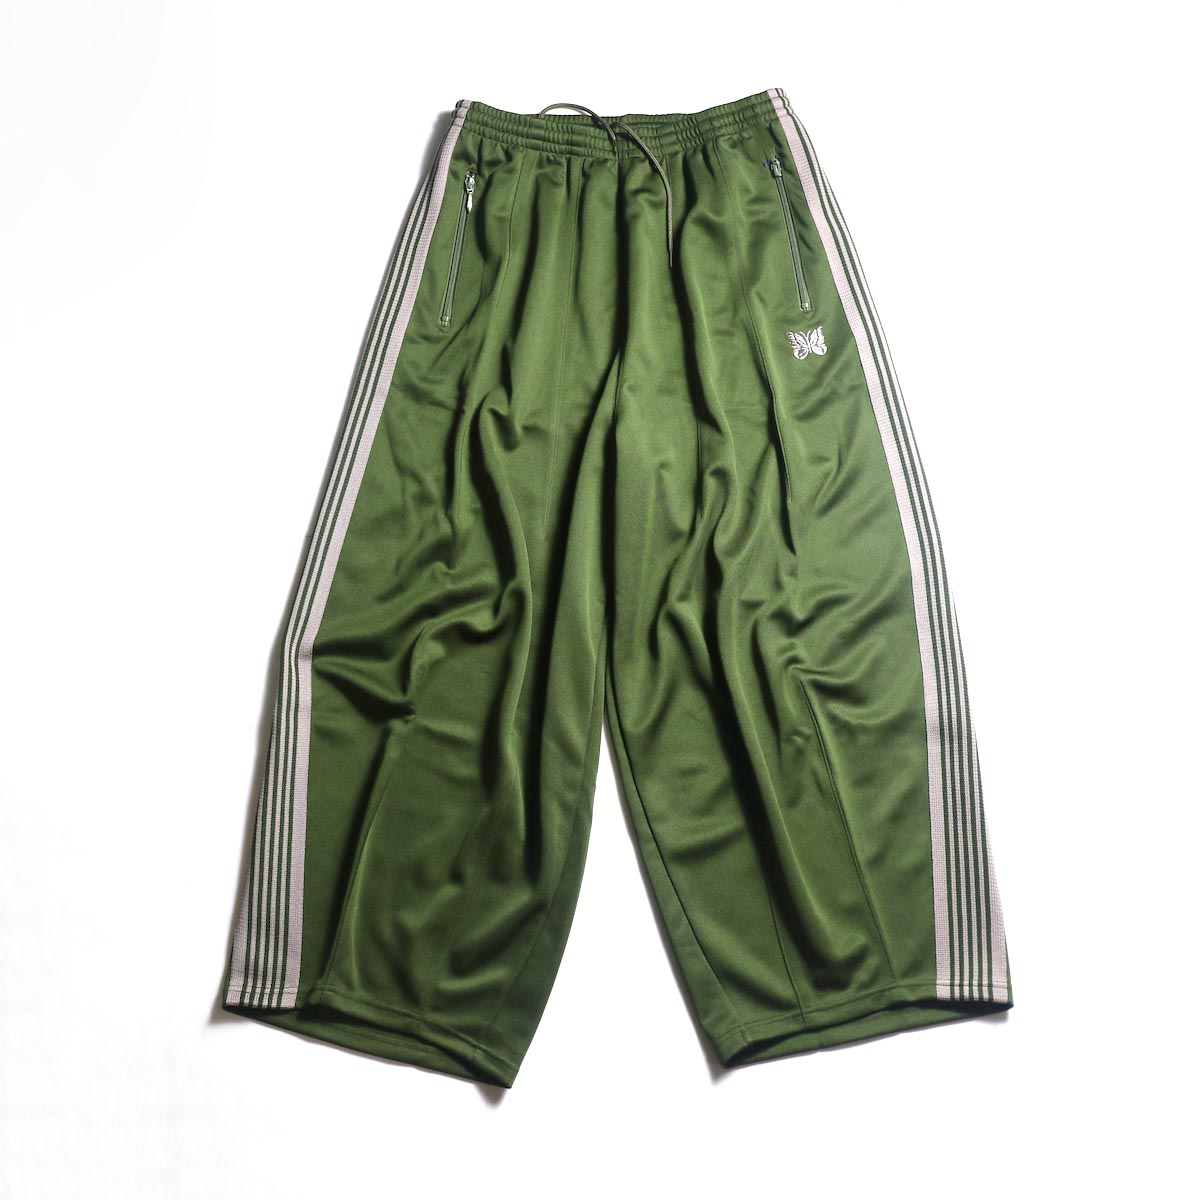 Needles / H.D. TRACK PANT - POLY SMOOTH (Olive)正面